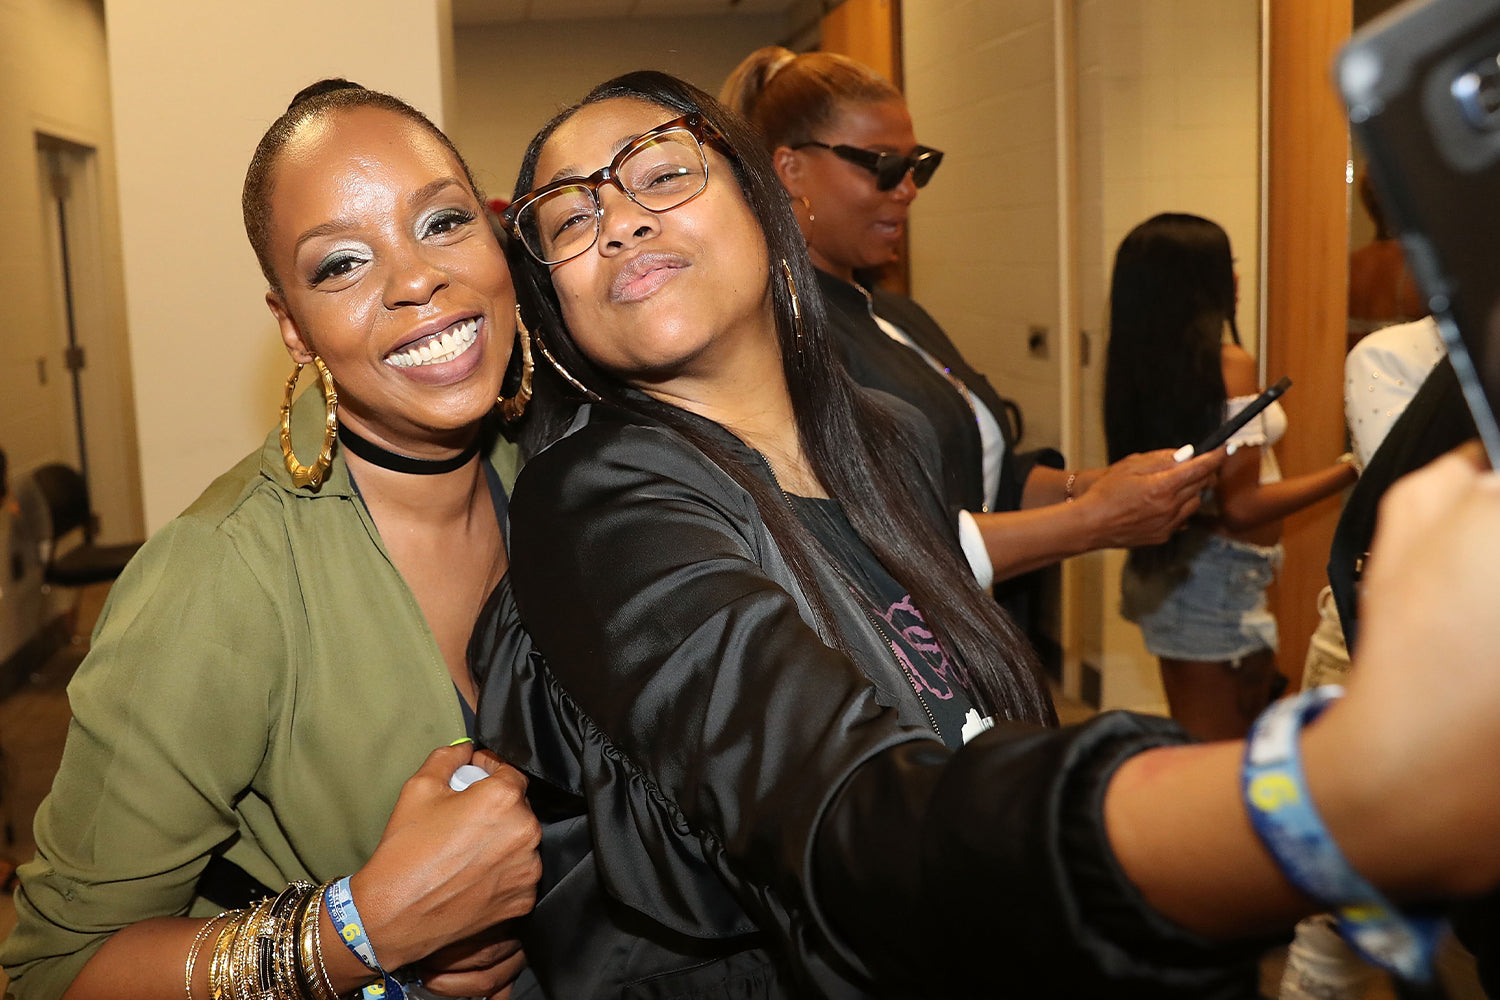 Rah Digga and Monie Love backstage at the 2017 Hot 97 Summer Jam at MetLife Stadium on June 11, 2017 in East Rutherford, New Jersey. (Photo by Johnny Nunez/WireImage)